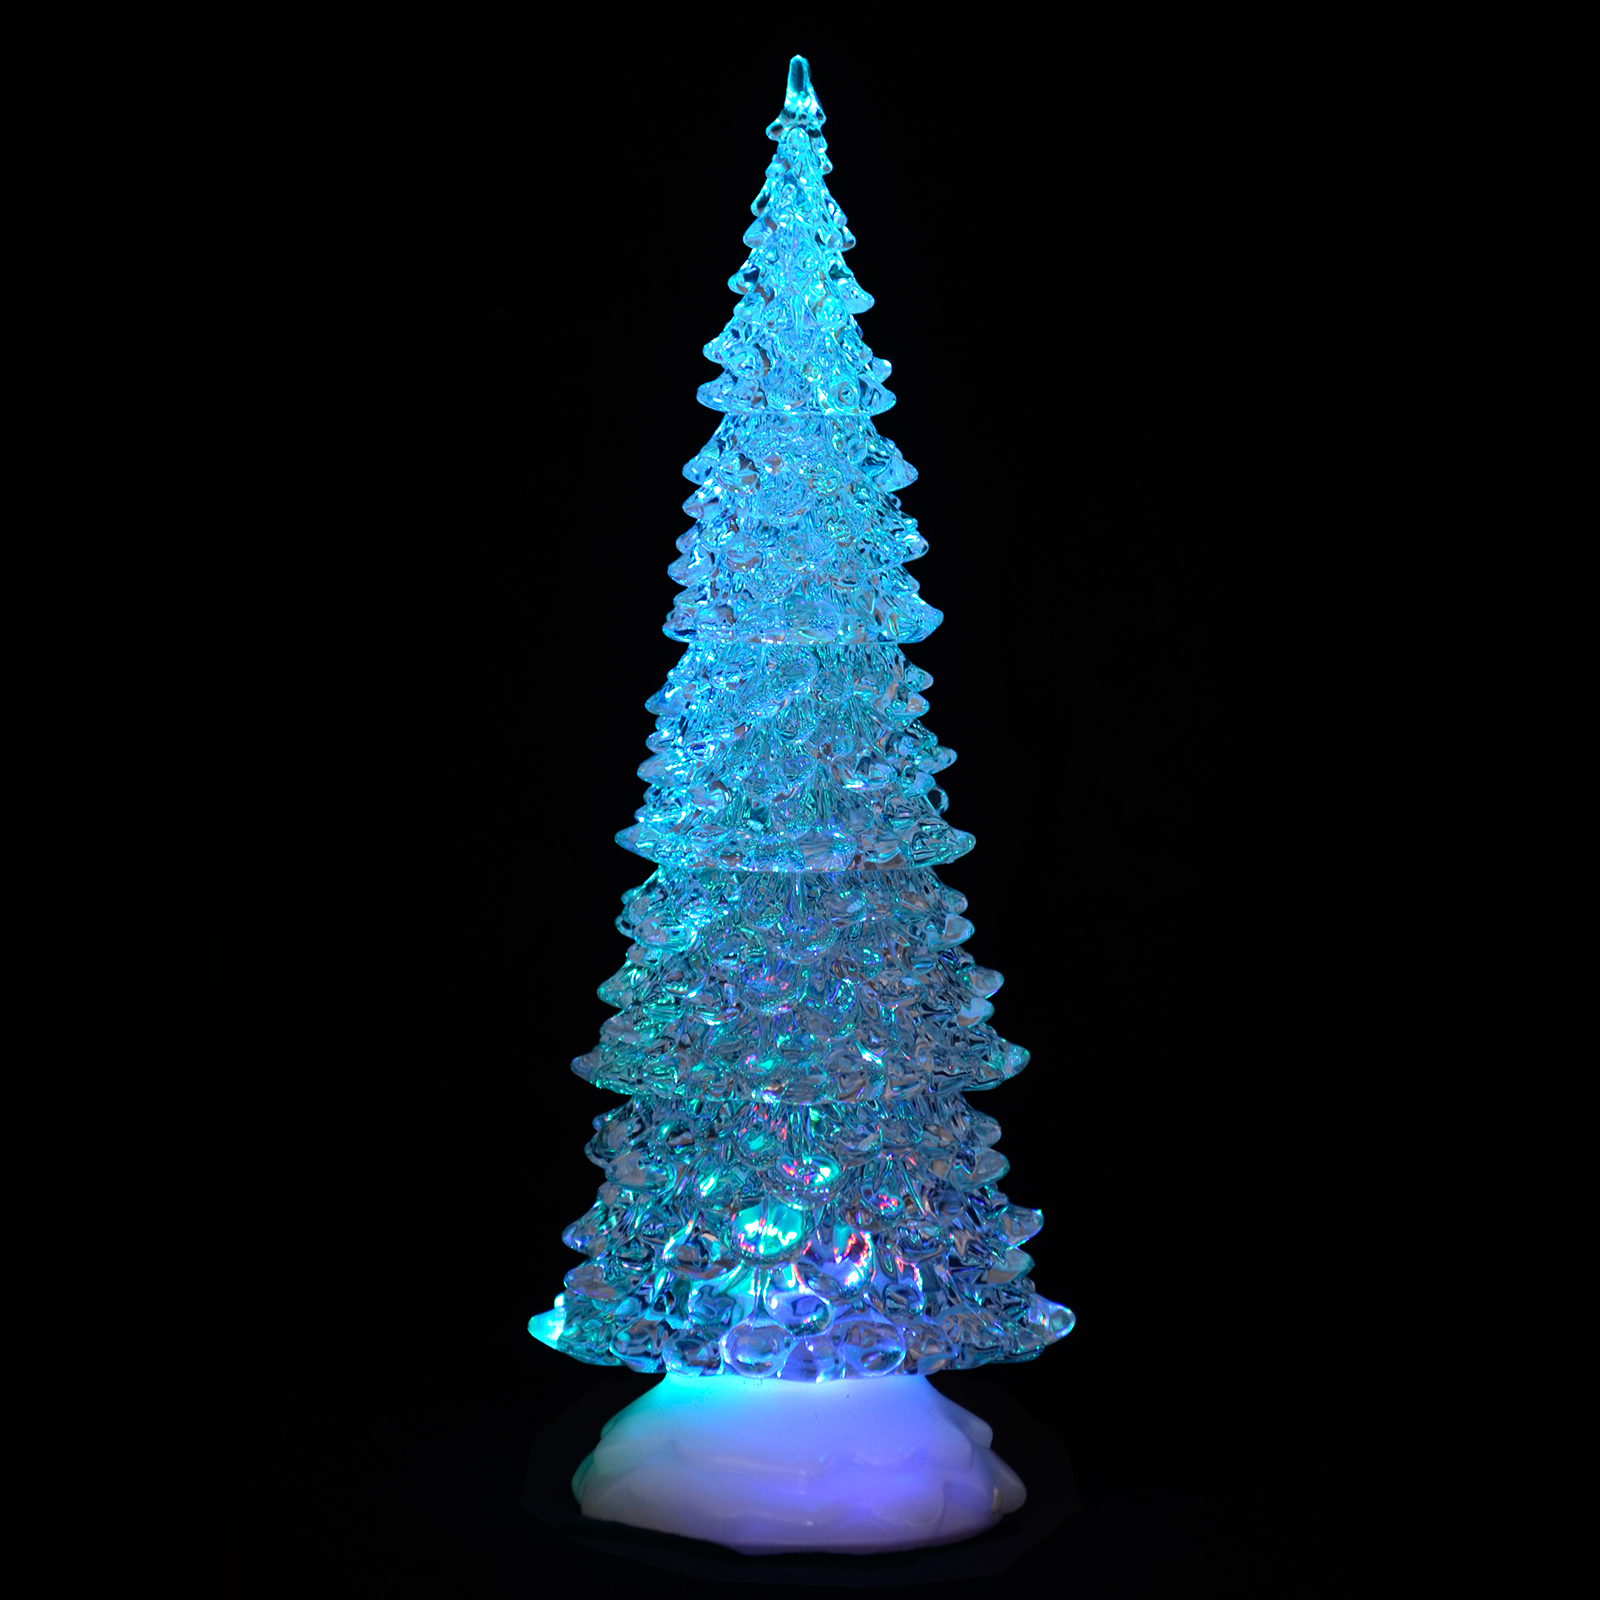 Light up led acrylic xmas tree ornament christmas decoration for Acrylic decoration